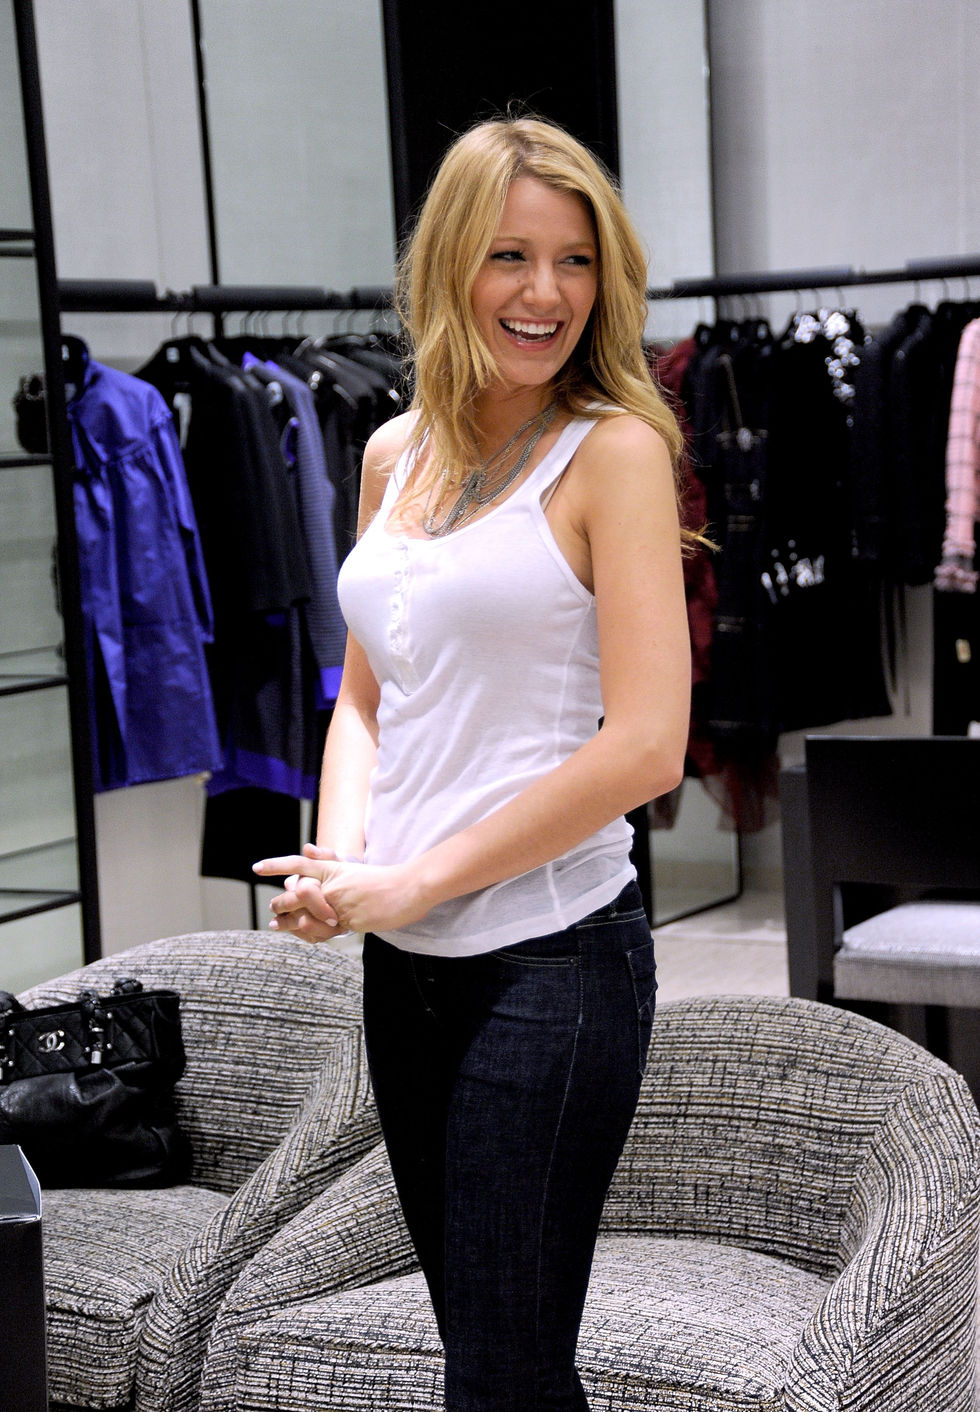 blake-lively-at-chanel-boutique-01